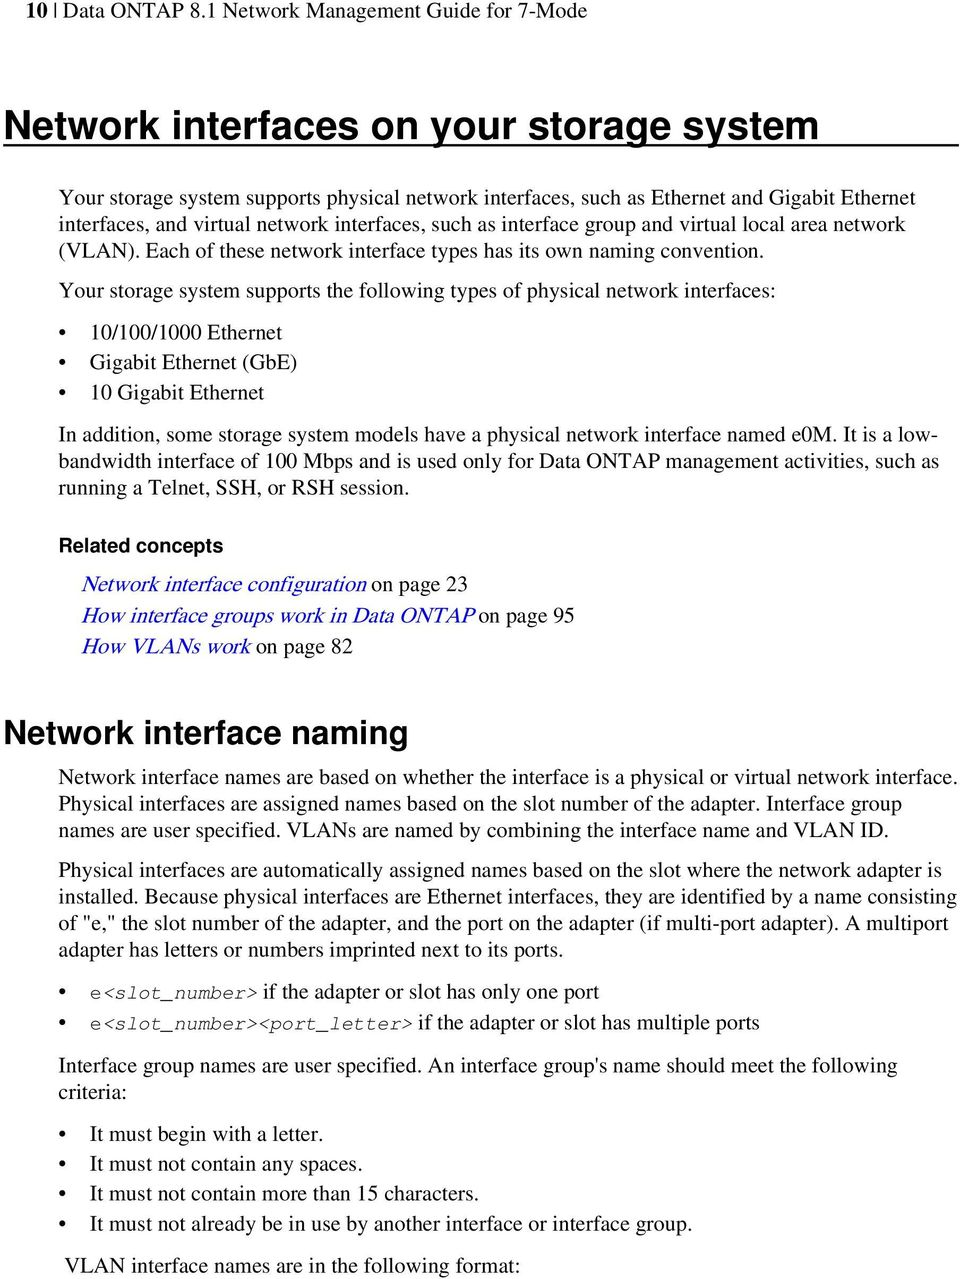 network interfaces, such as interface group and virtual local area network (VLAN). Each of these network interface types has its own naming convention.